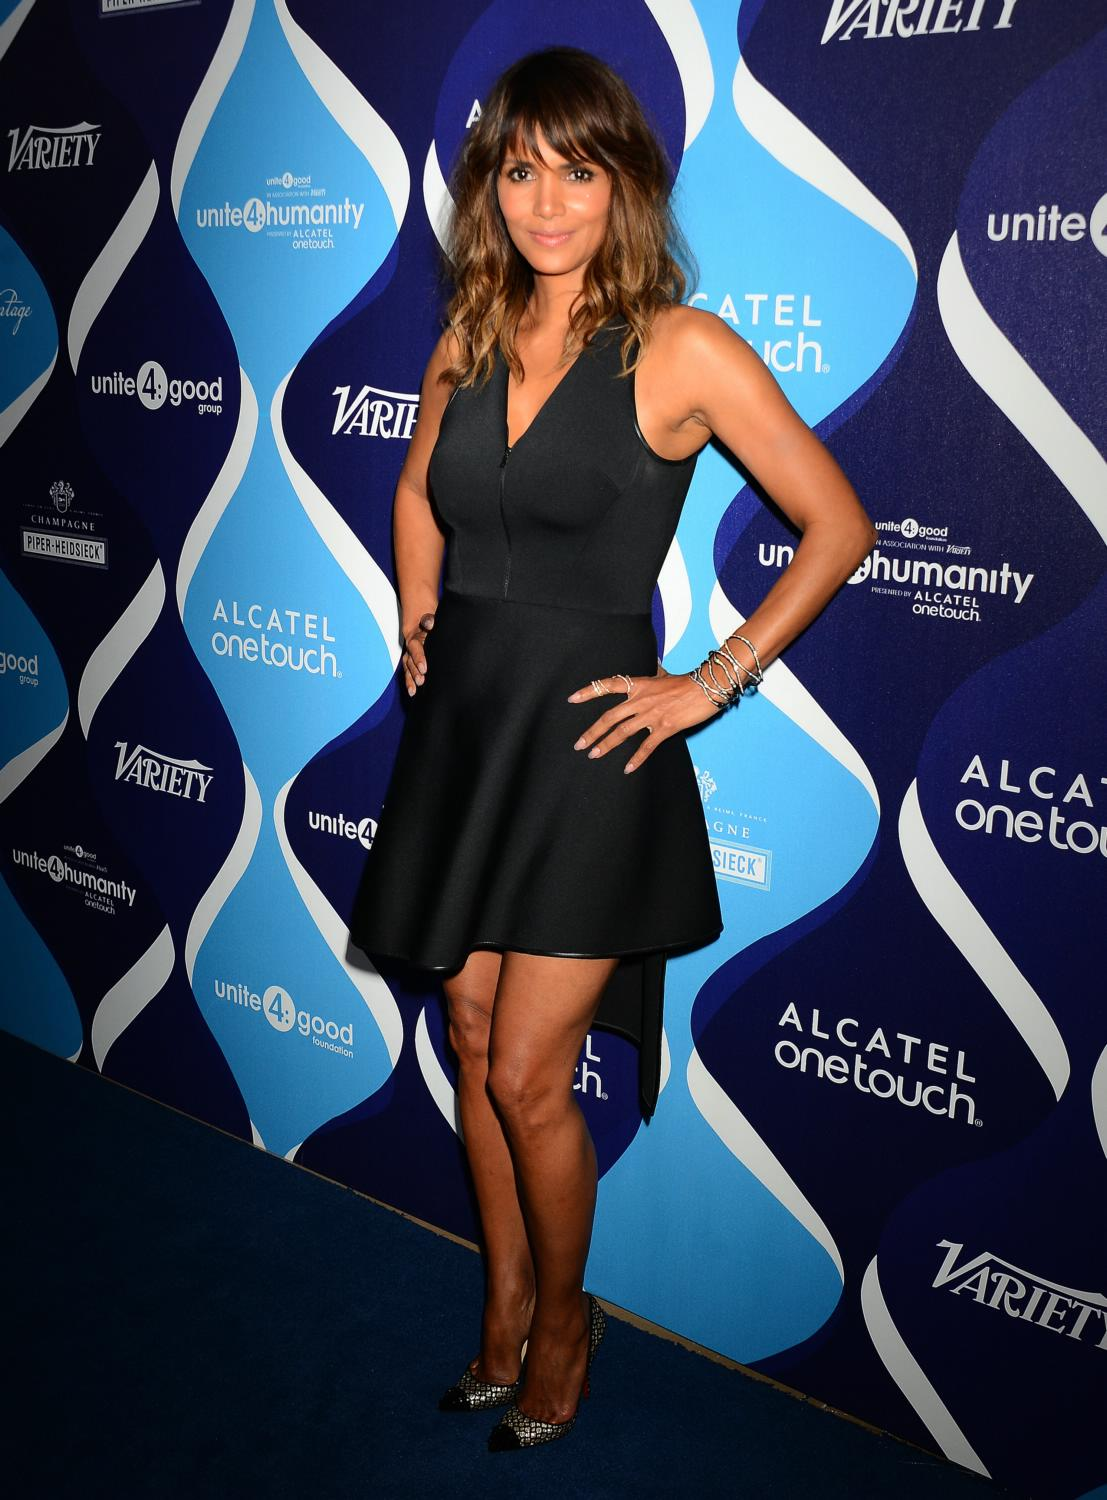 halle-berry-david-koma-2nd-annual-unite4humanity-event